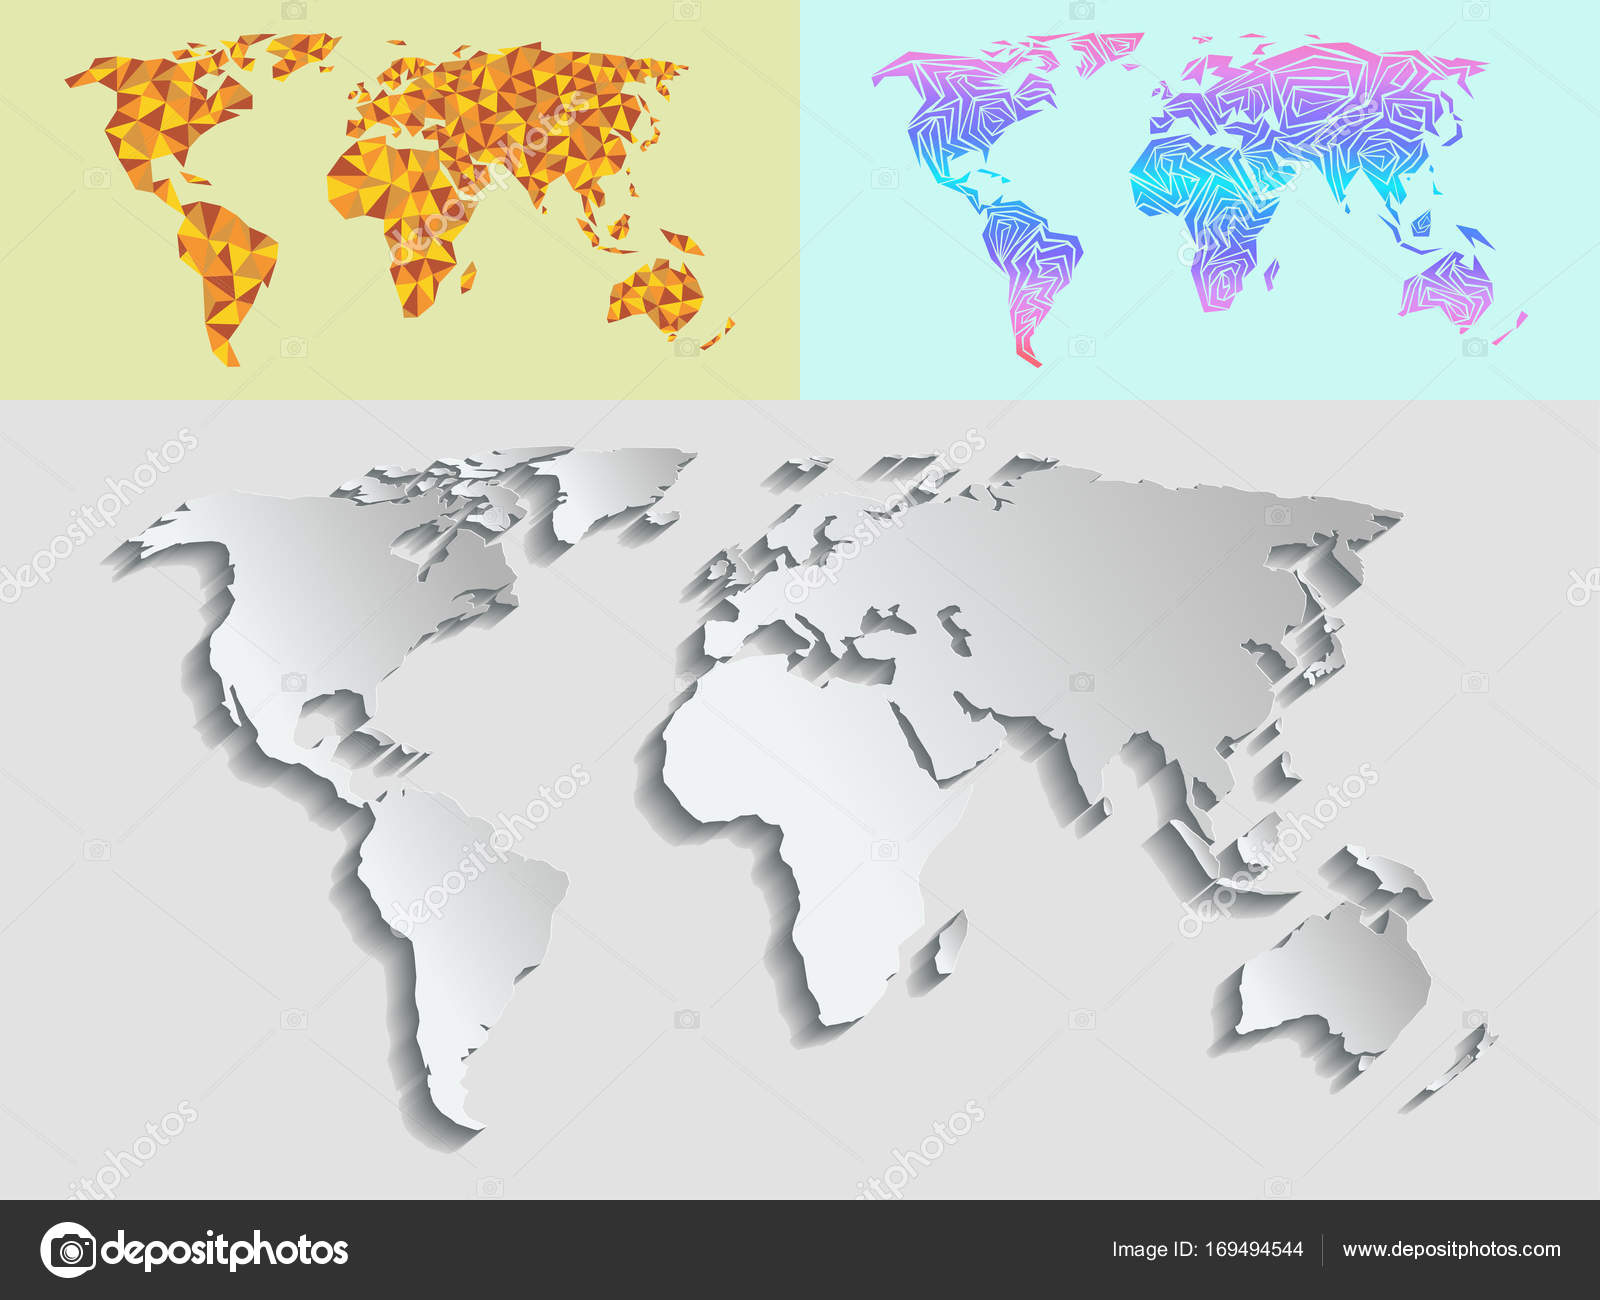 Maps globe earth contour outline silhouette world mapping maps globe earth contour outline silhouette world mapping texture vector illustration international art worldwide global ocean cartography gumiabroncs Image collections